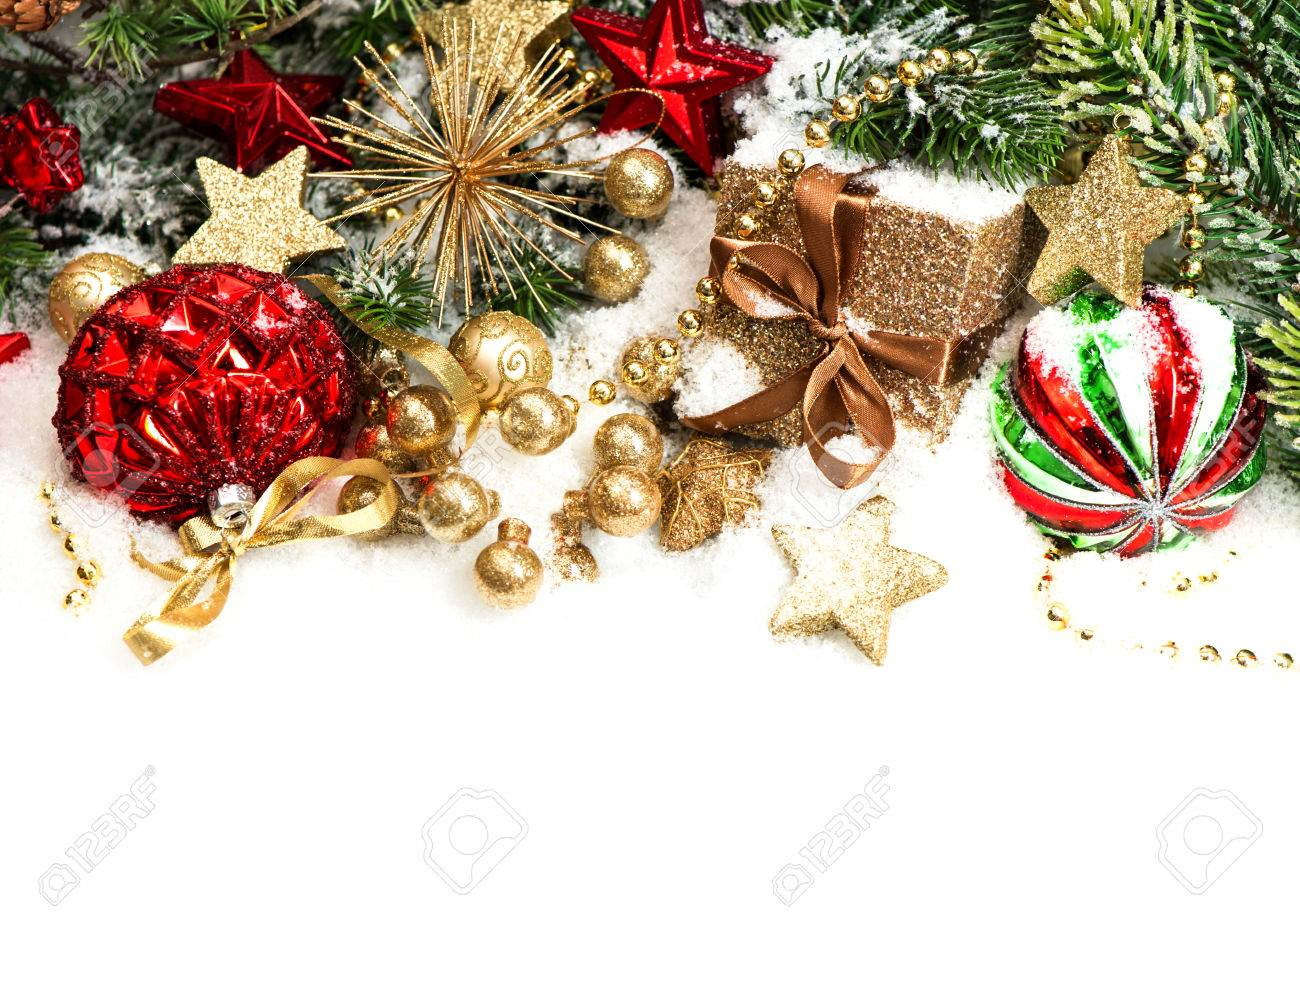 White christmas tree with red and green decorations - Christmas Decorations In Red Golden Green And Christmas Tree Branches On White Background Stock